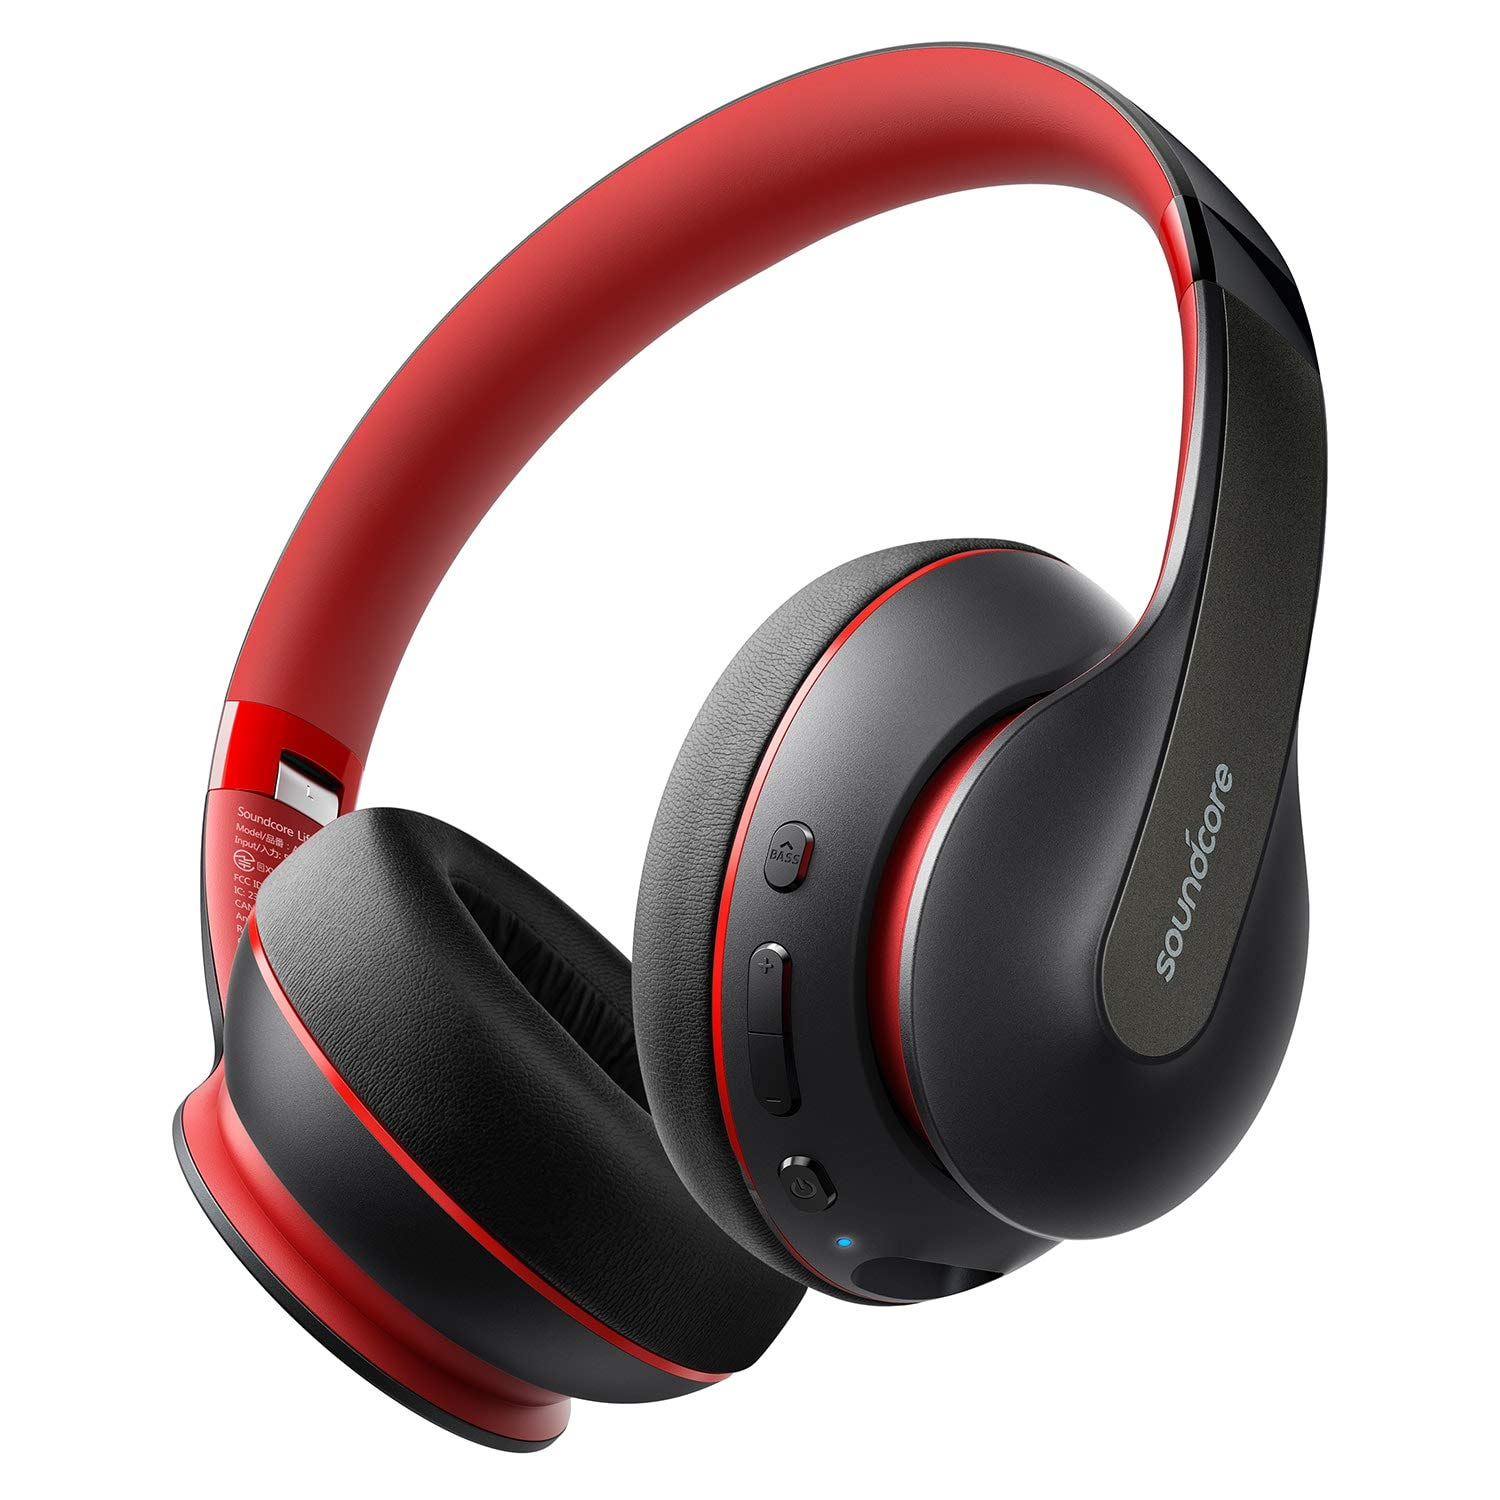 anker-soundcore-life-q10-wireless-bluetooth-headphones-over-ear-and-foldable-hi-res-certified-sound-60-hour-playtime-and-fast-usb-c-charging-deep-bass-aux-input